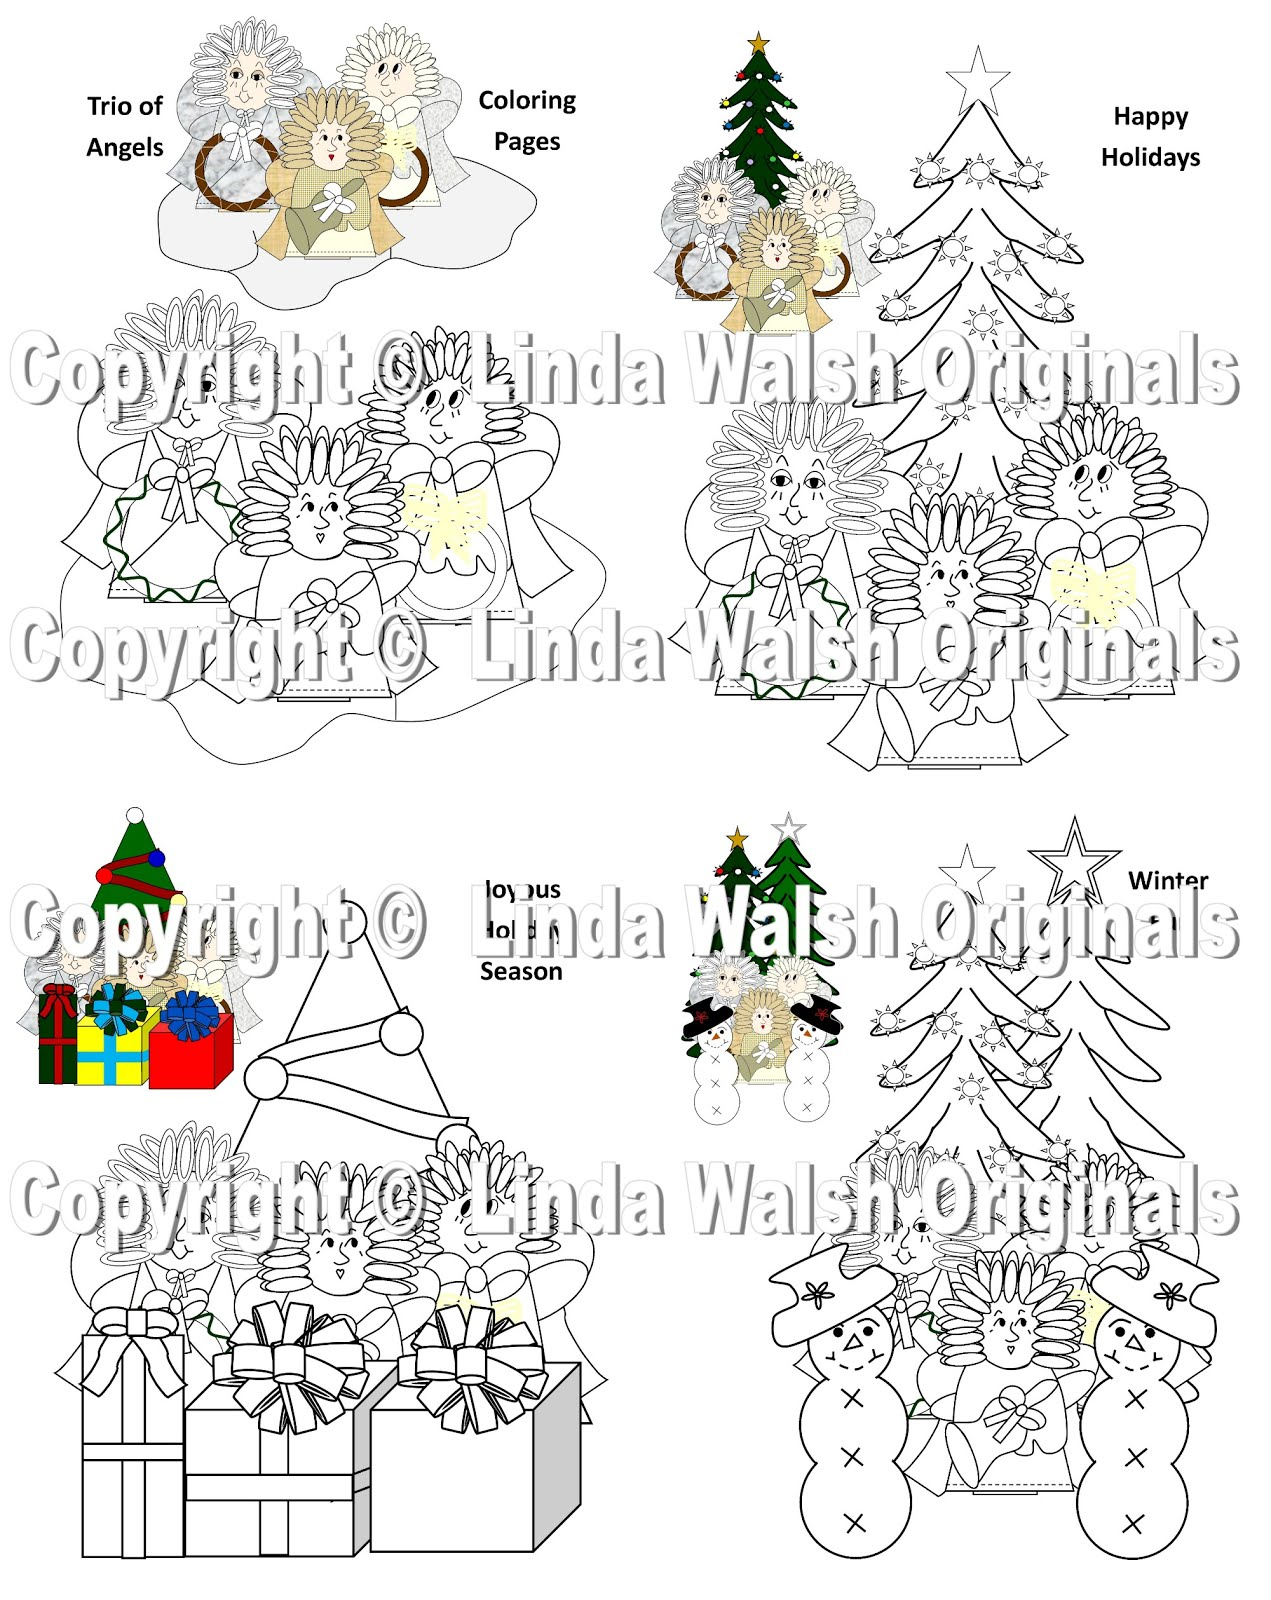 Trio Of Angels Free Holiday Coloring Pages